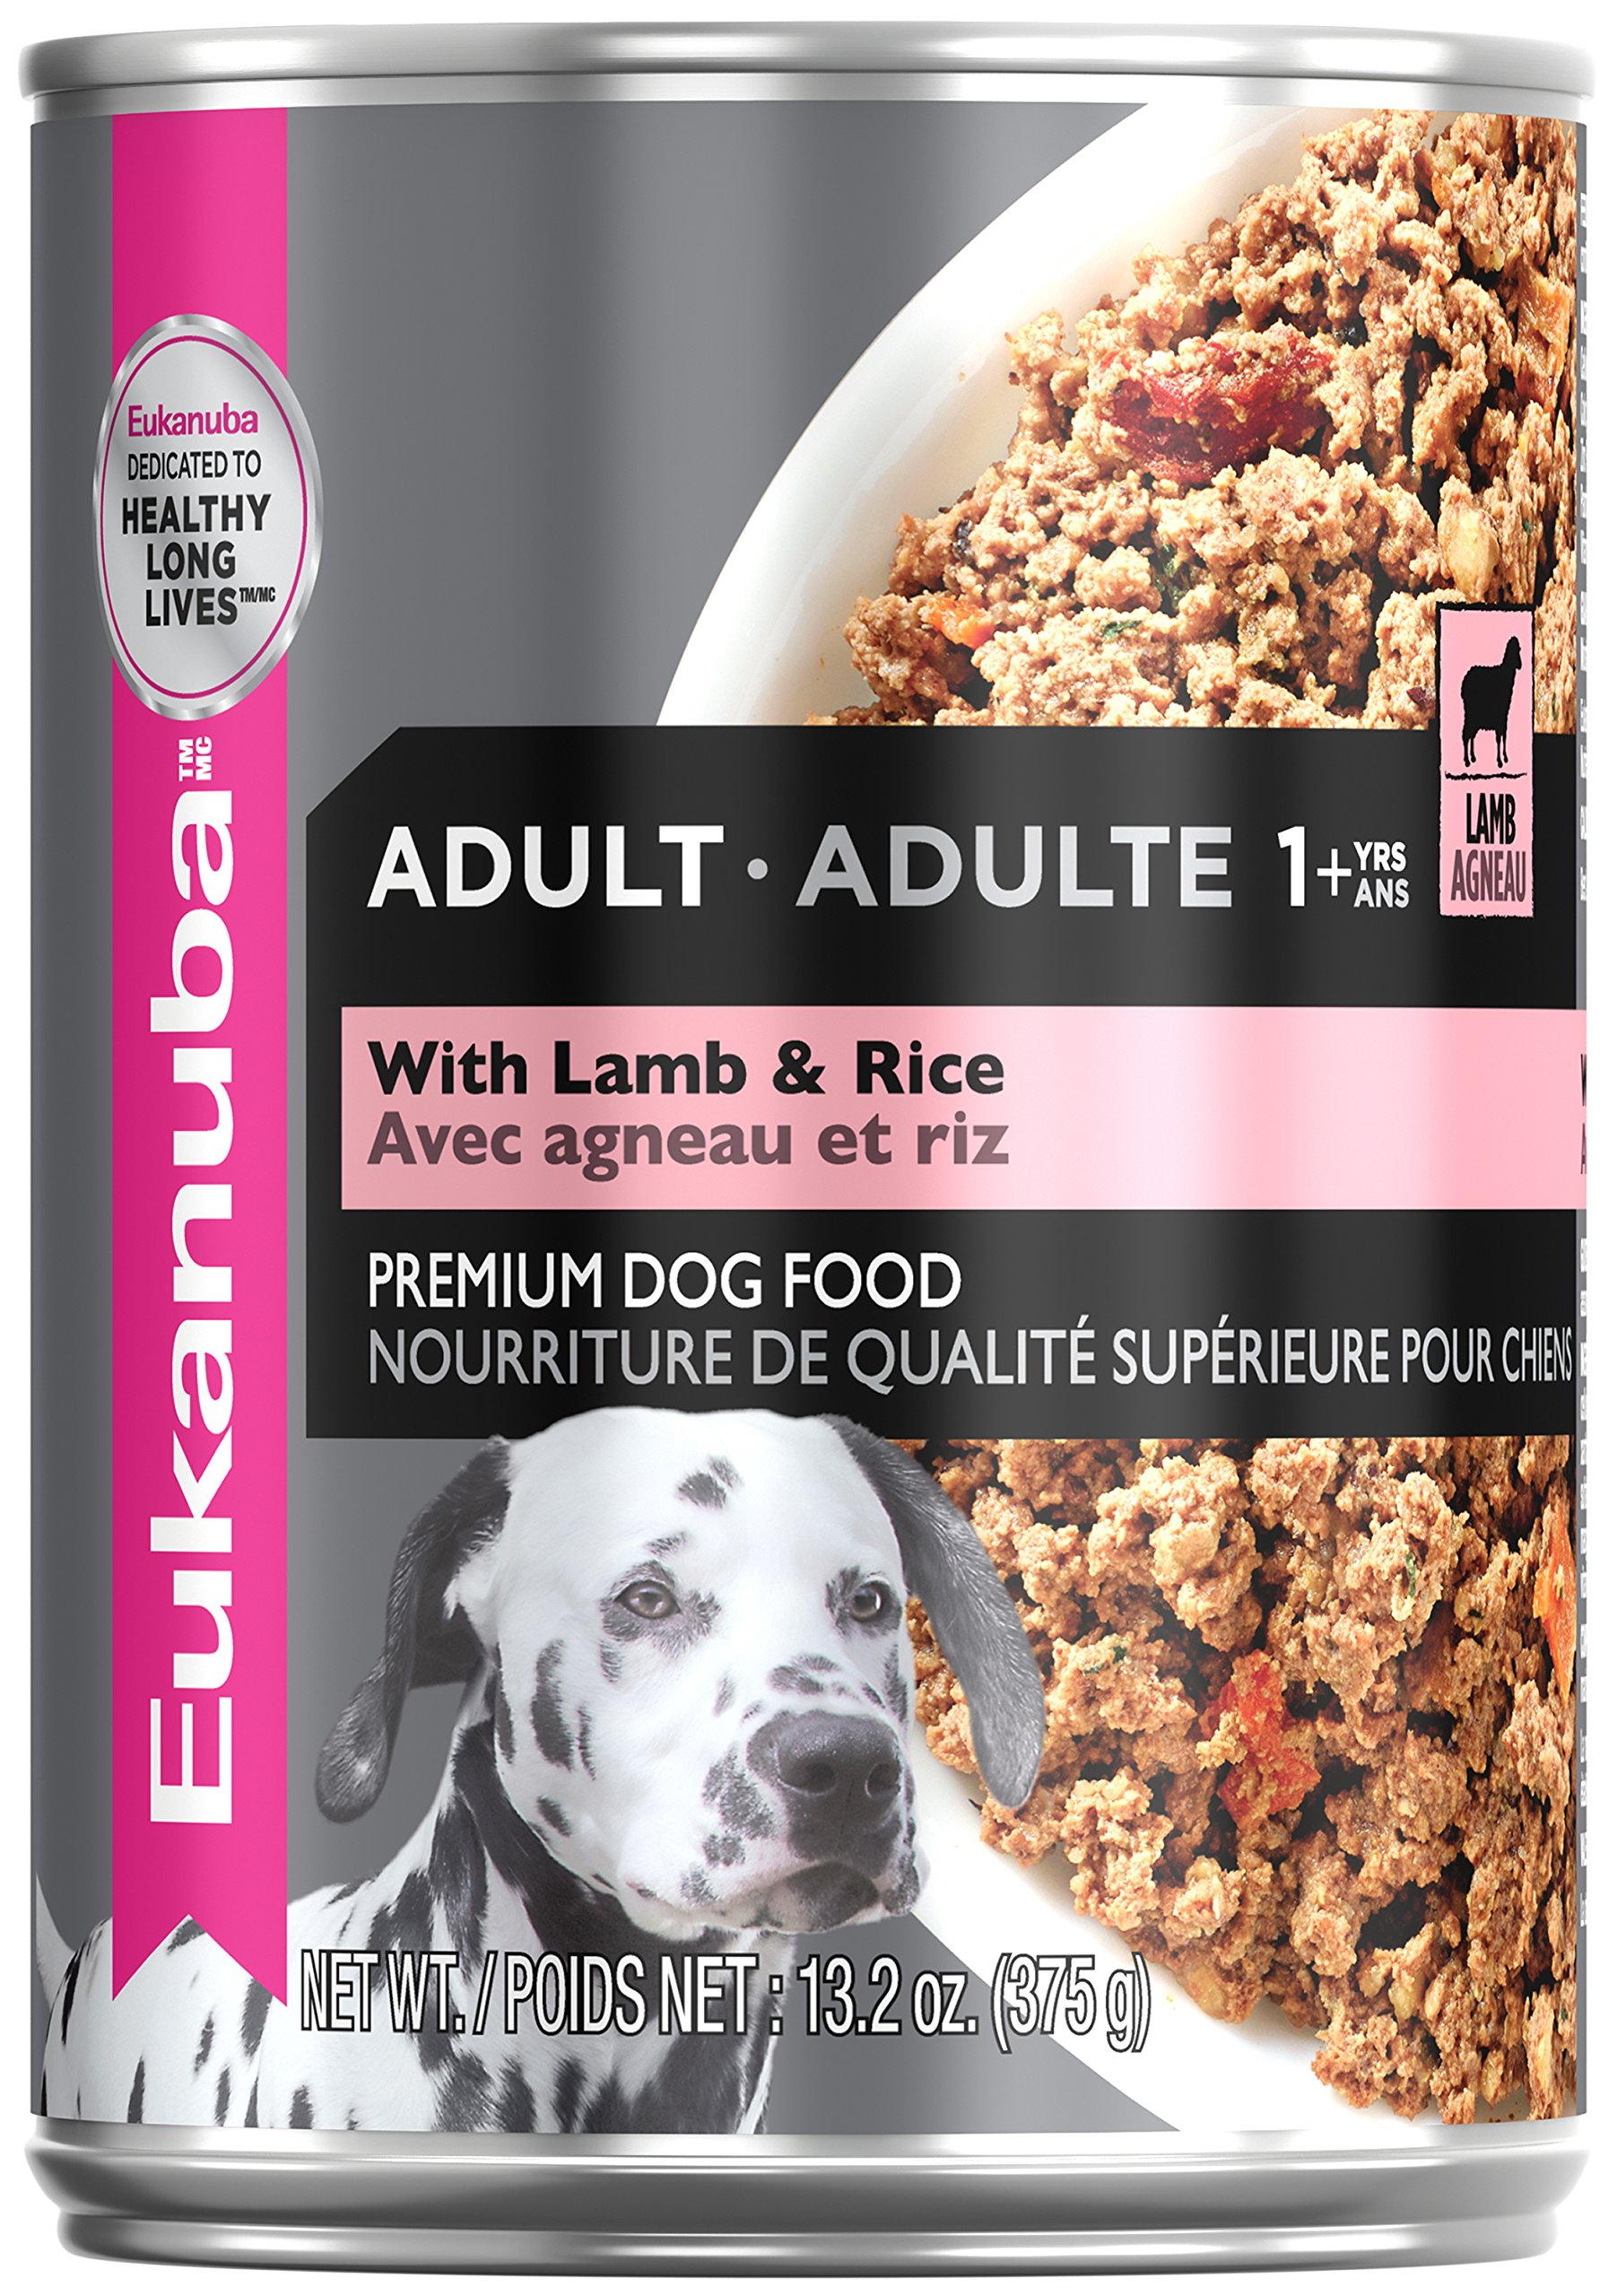 Eukanuba Wet Food 10154713 Adult With Lamb & Rice Canned Dog Food (Case of 12), 13.2 oz